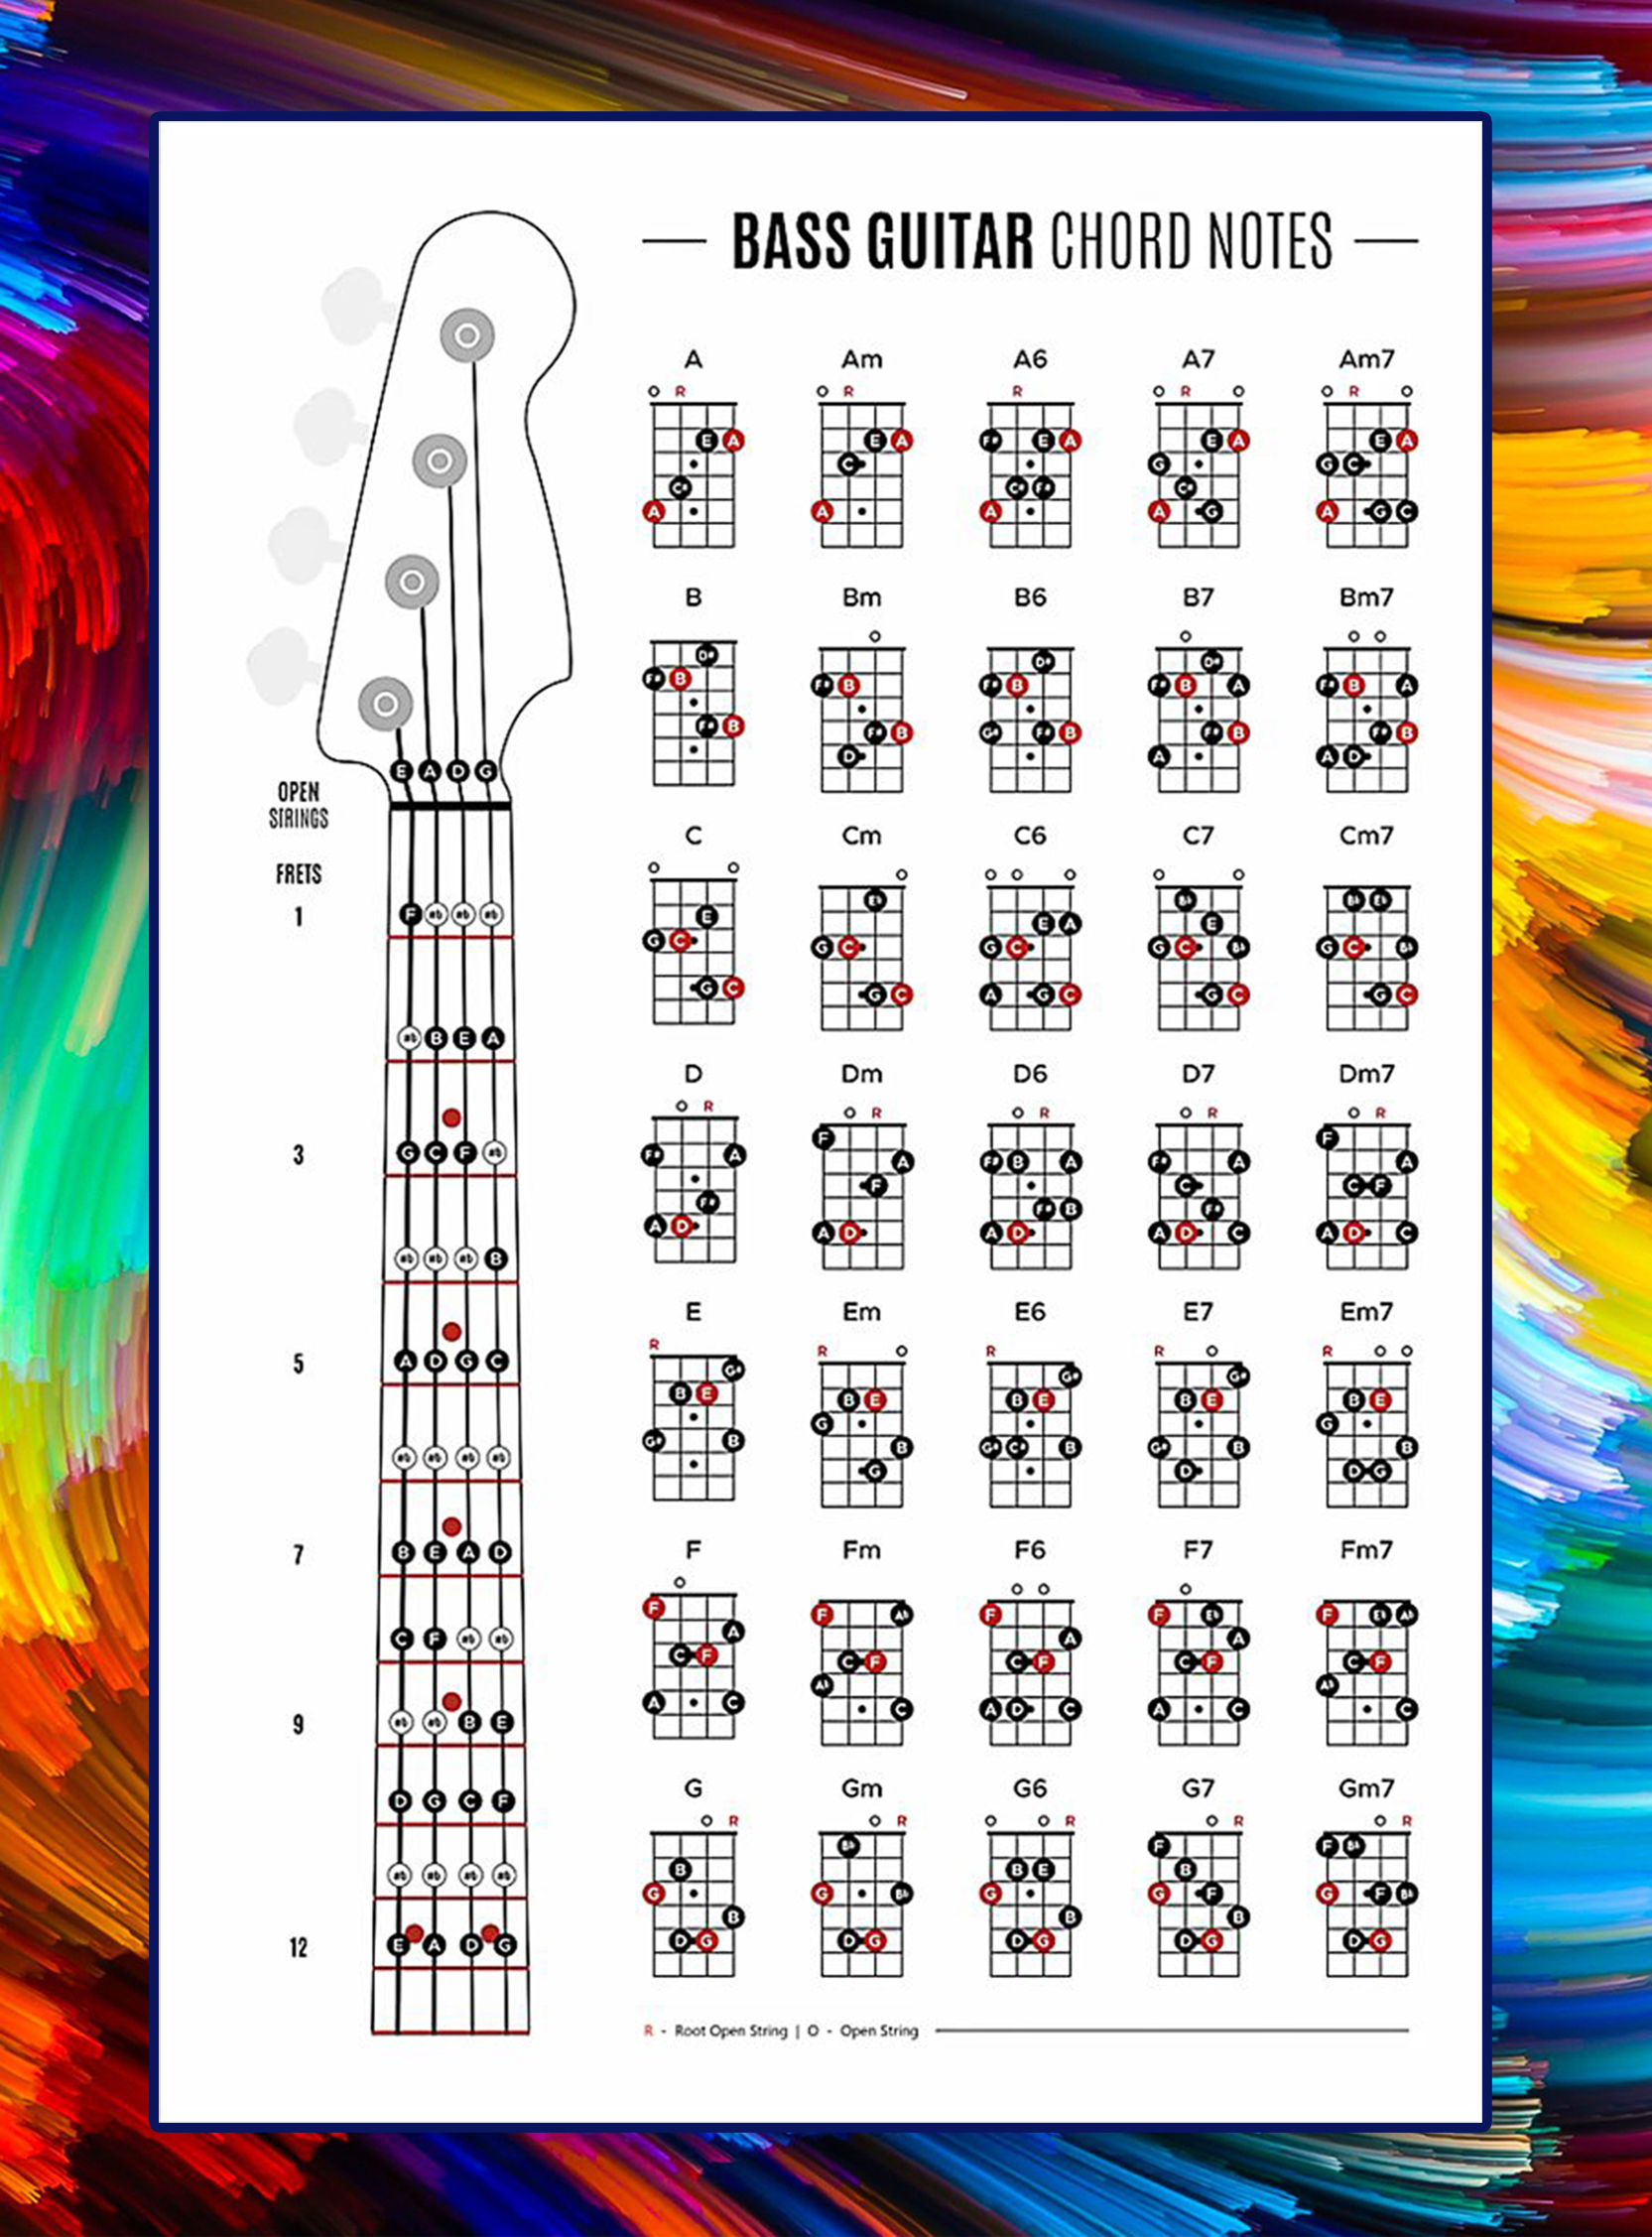 Bass guitar chord notes poster - A1